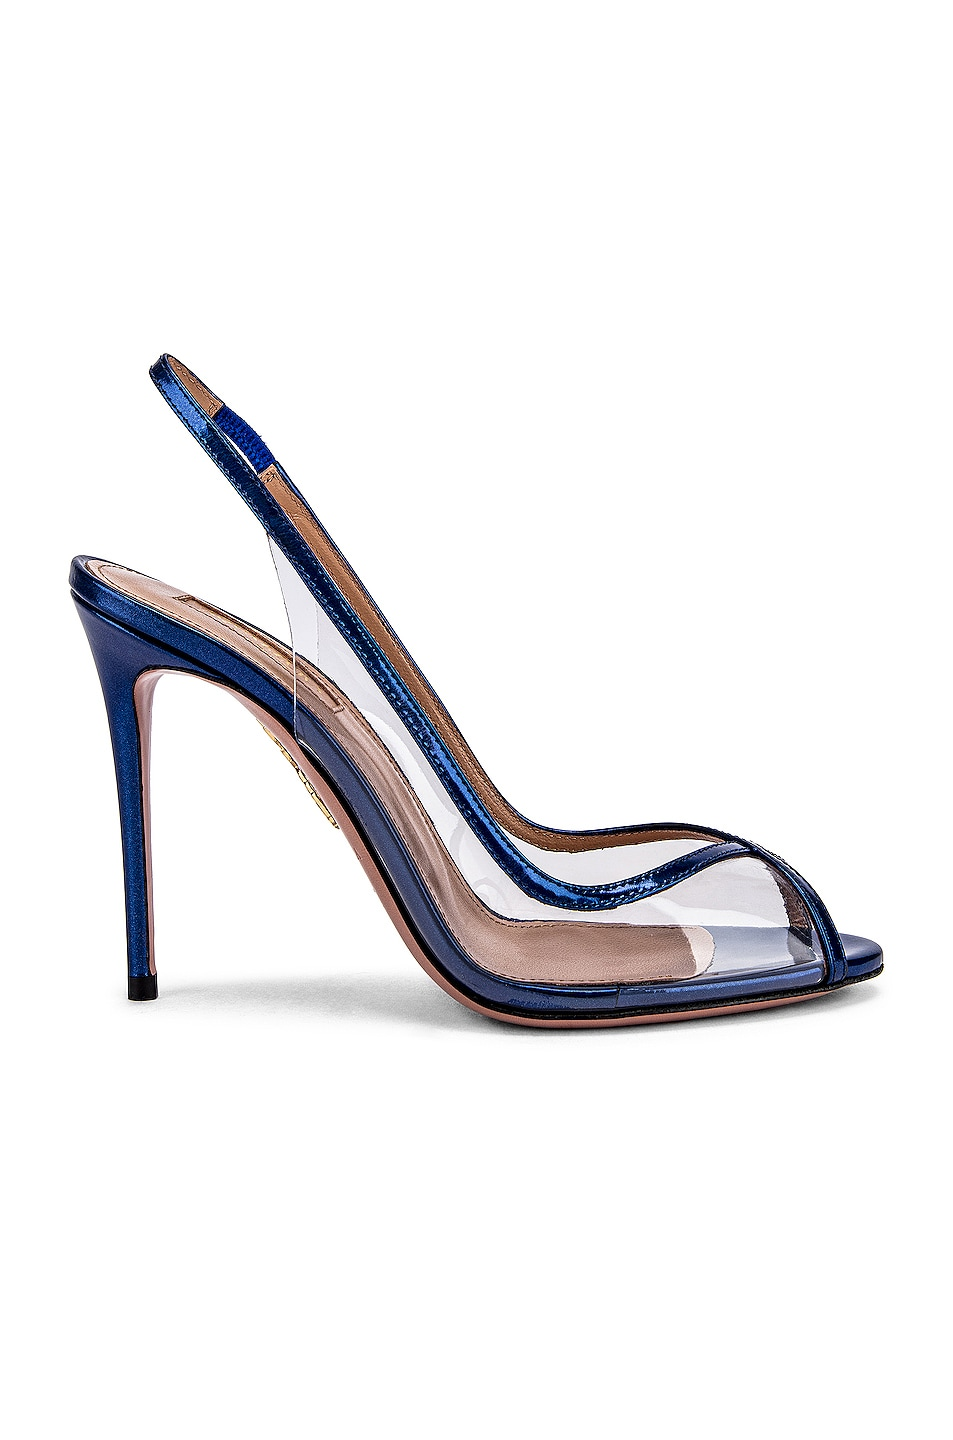 Image 1 of Aquazzura Temptation 105 Peep Toe Heel in Deep Ocean